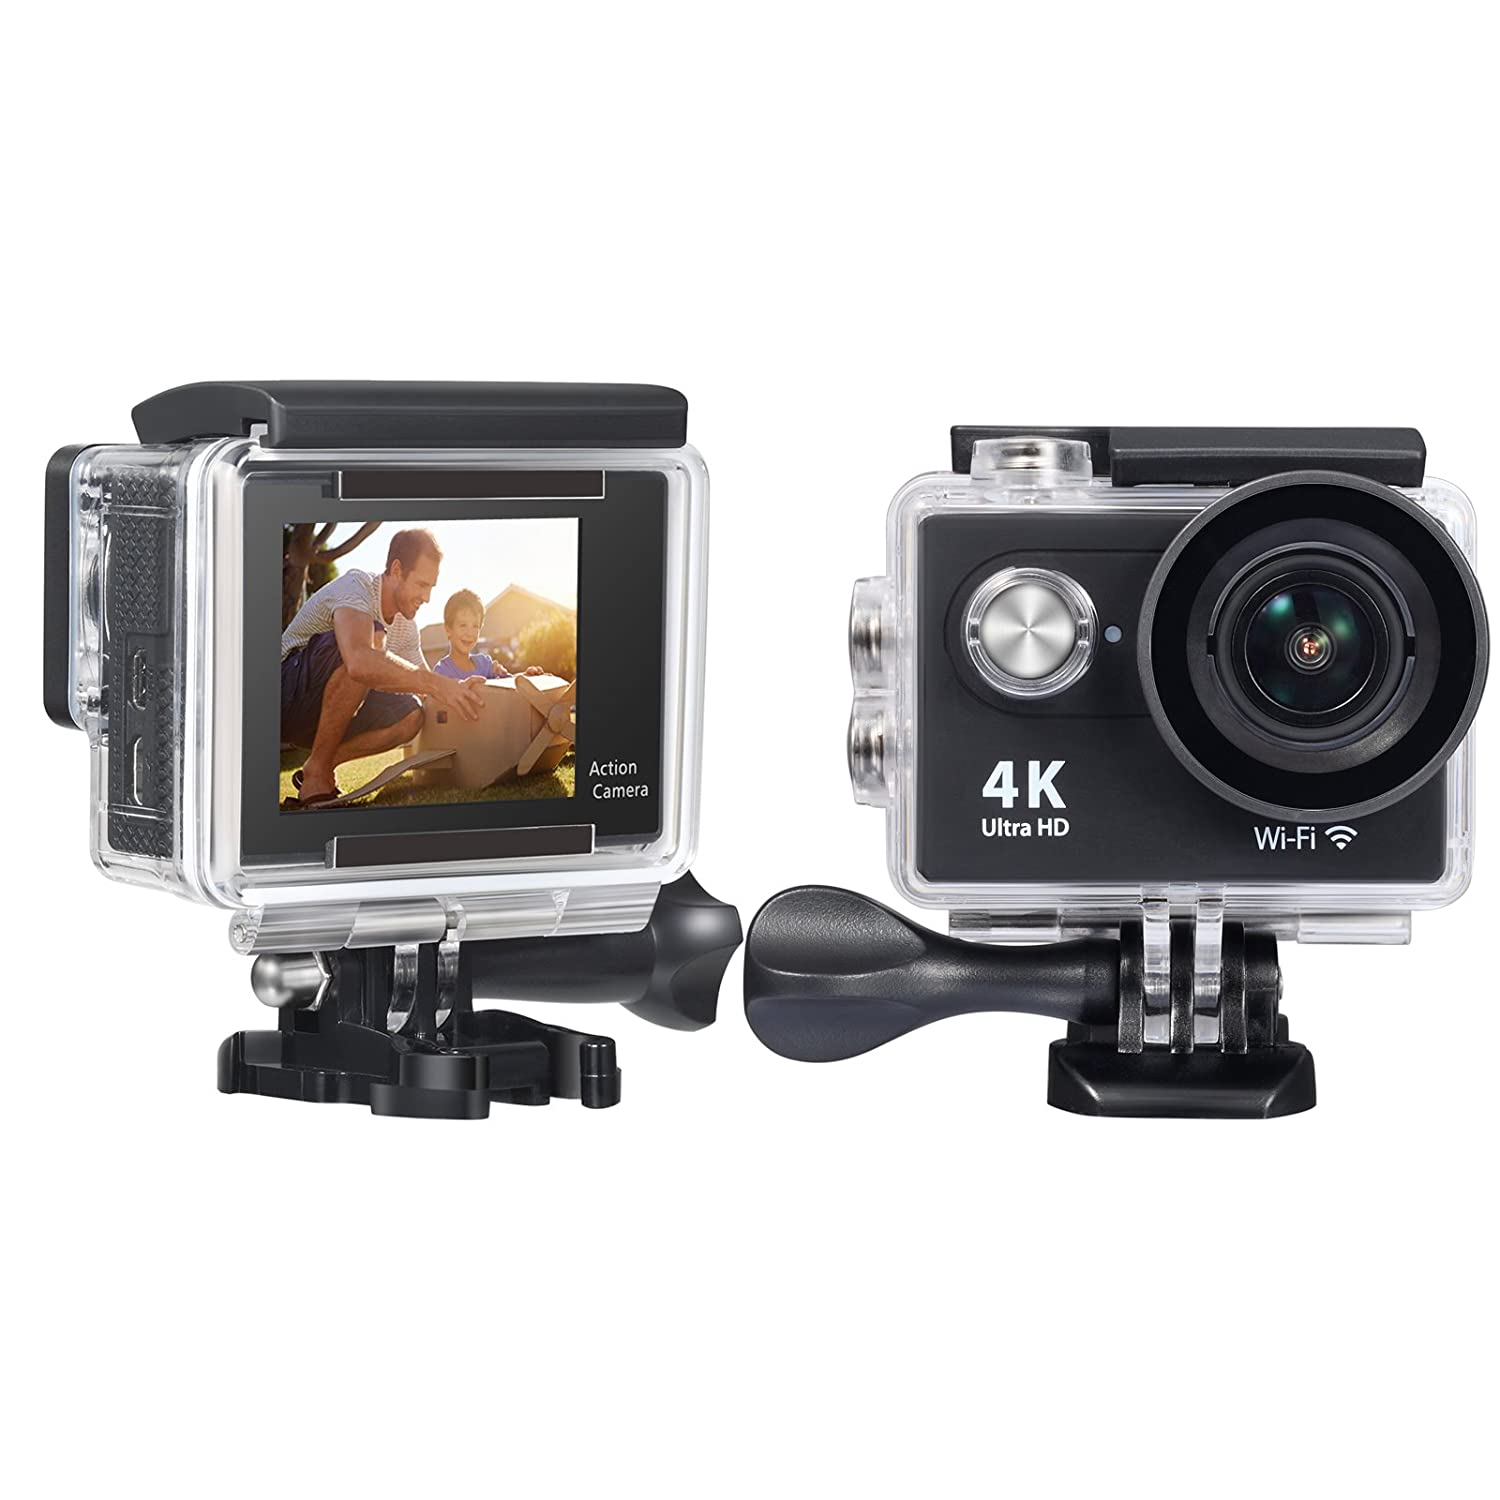 Onlyee 4k Wifi Sports Action Camera Ultra Hd Waterproof H3r Bult In Remote Control Cam Dv Camcorder 12mp 170 Degree Wide Angle 2 Inch Lcd Screen 24g